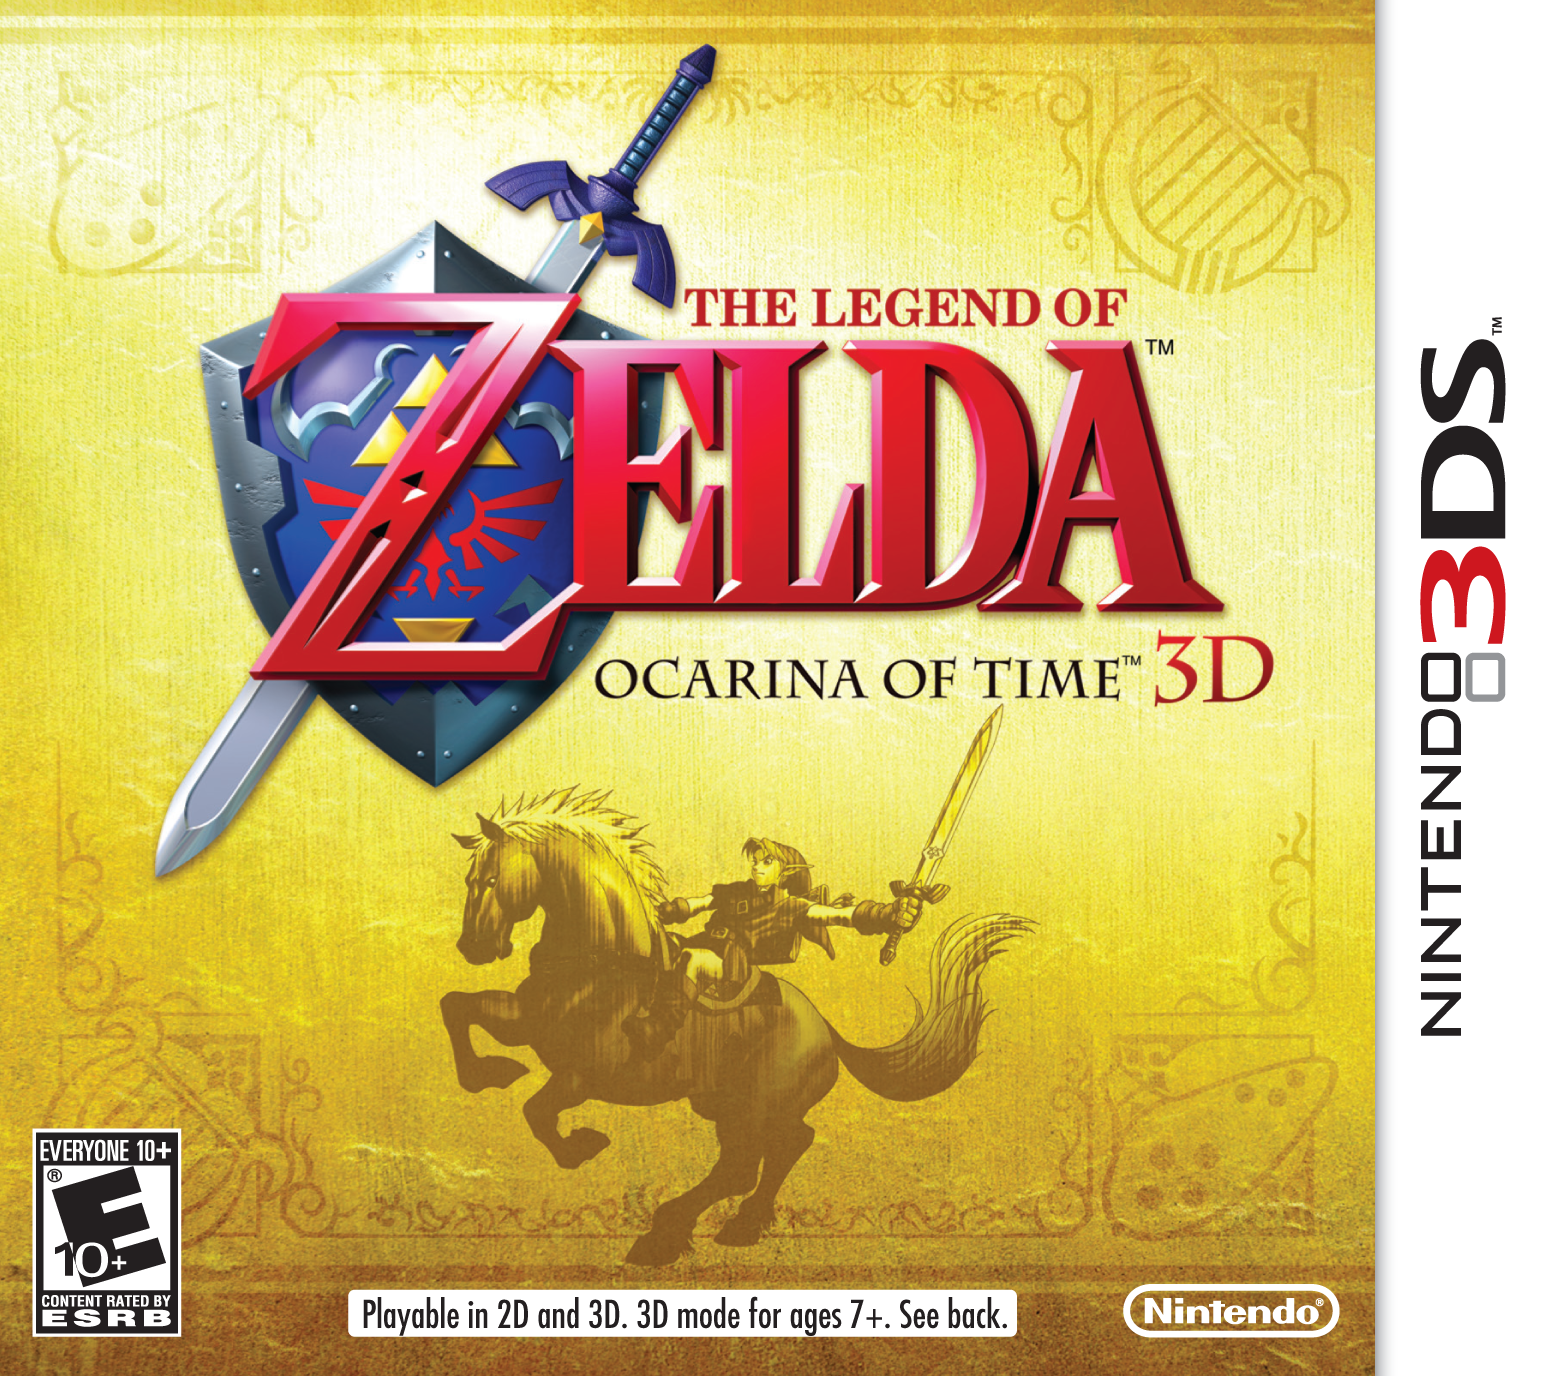 Ocarina-of-Time-3D-NA.png